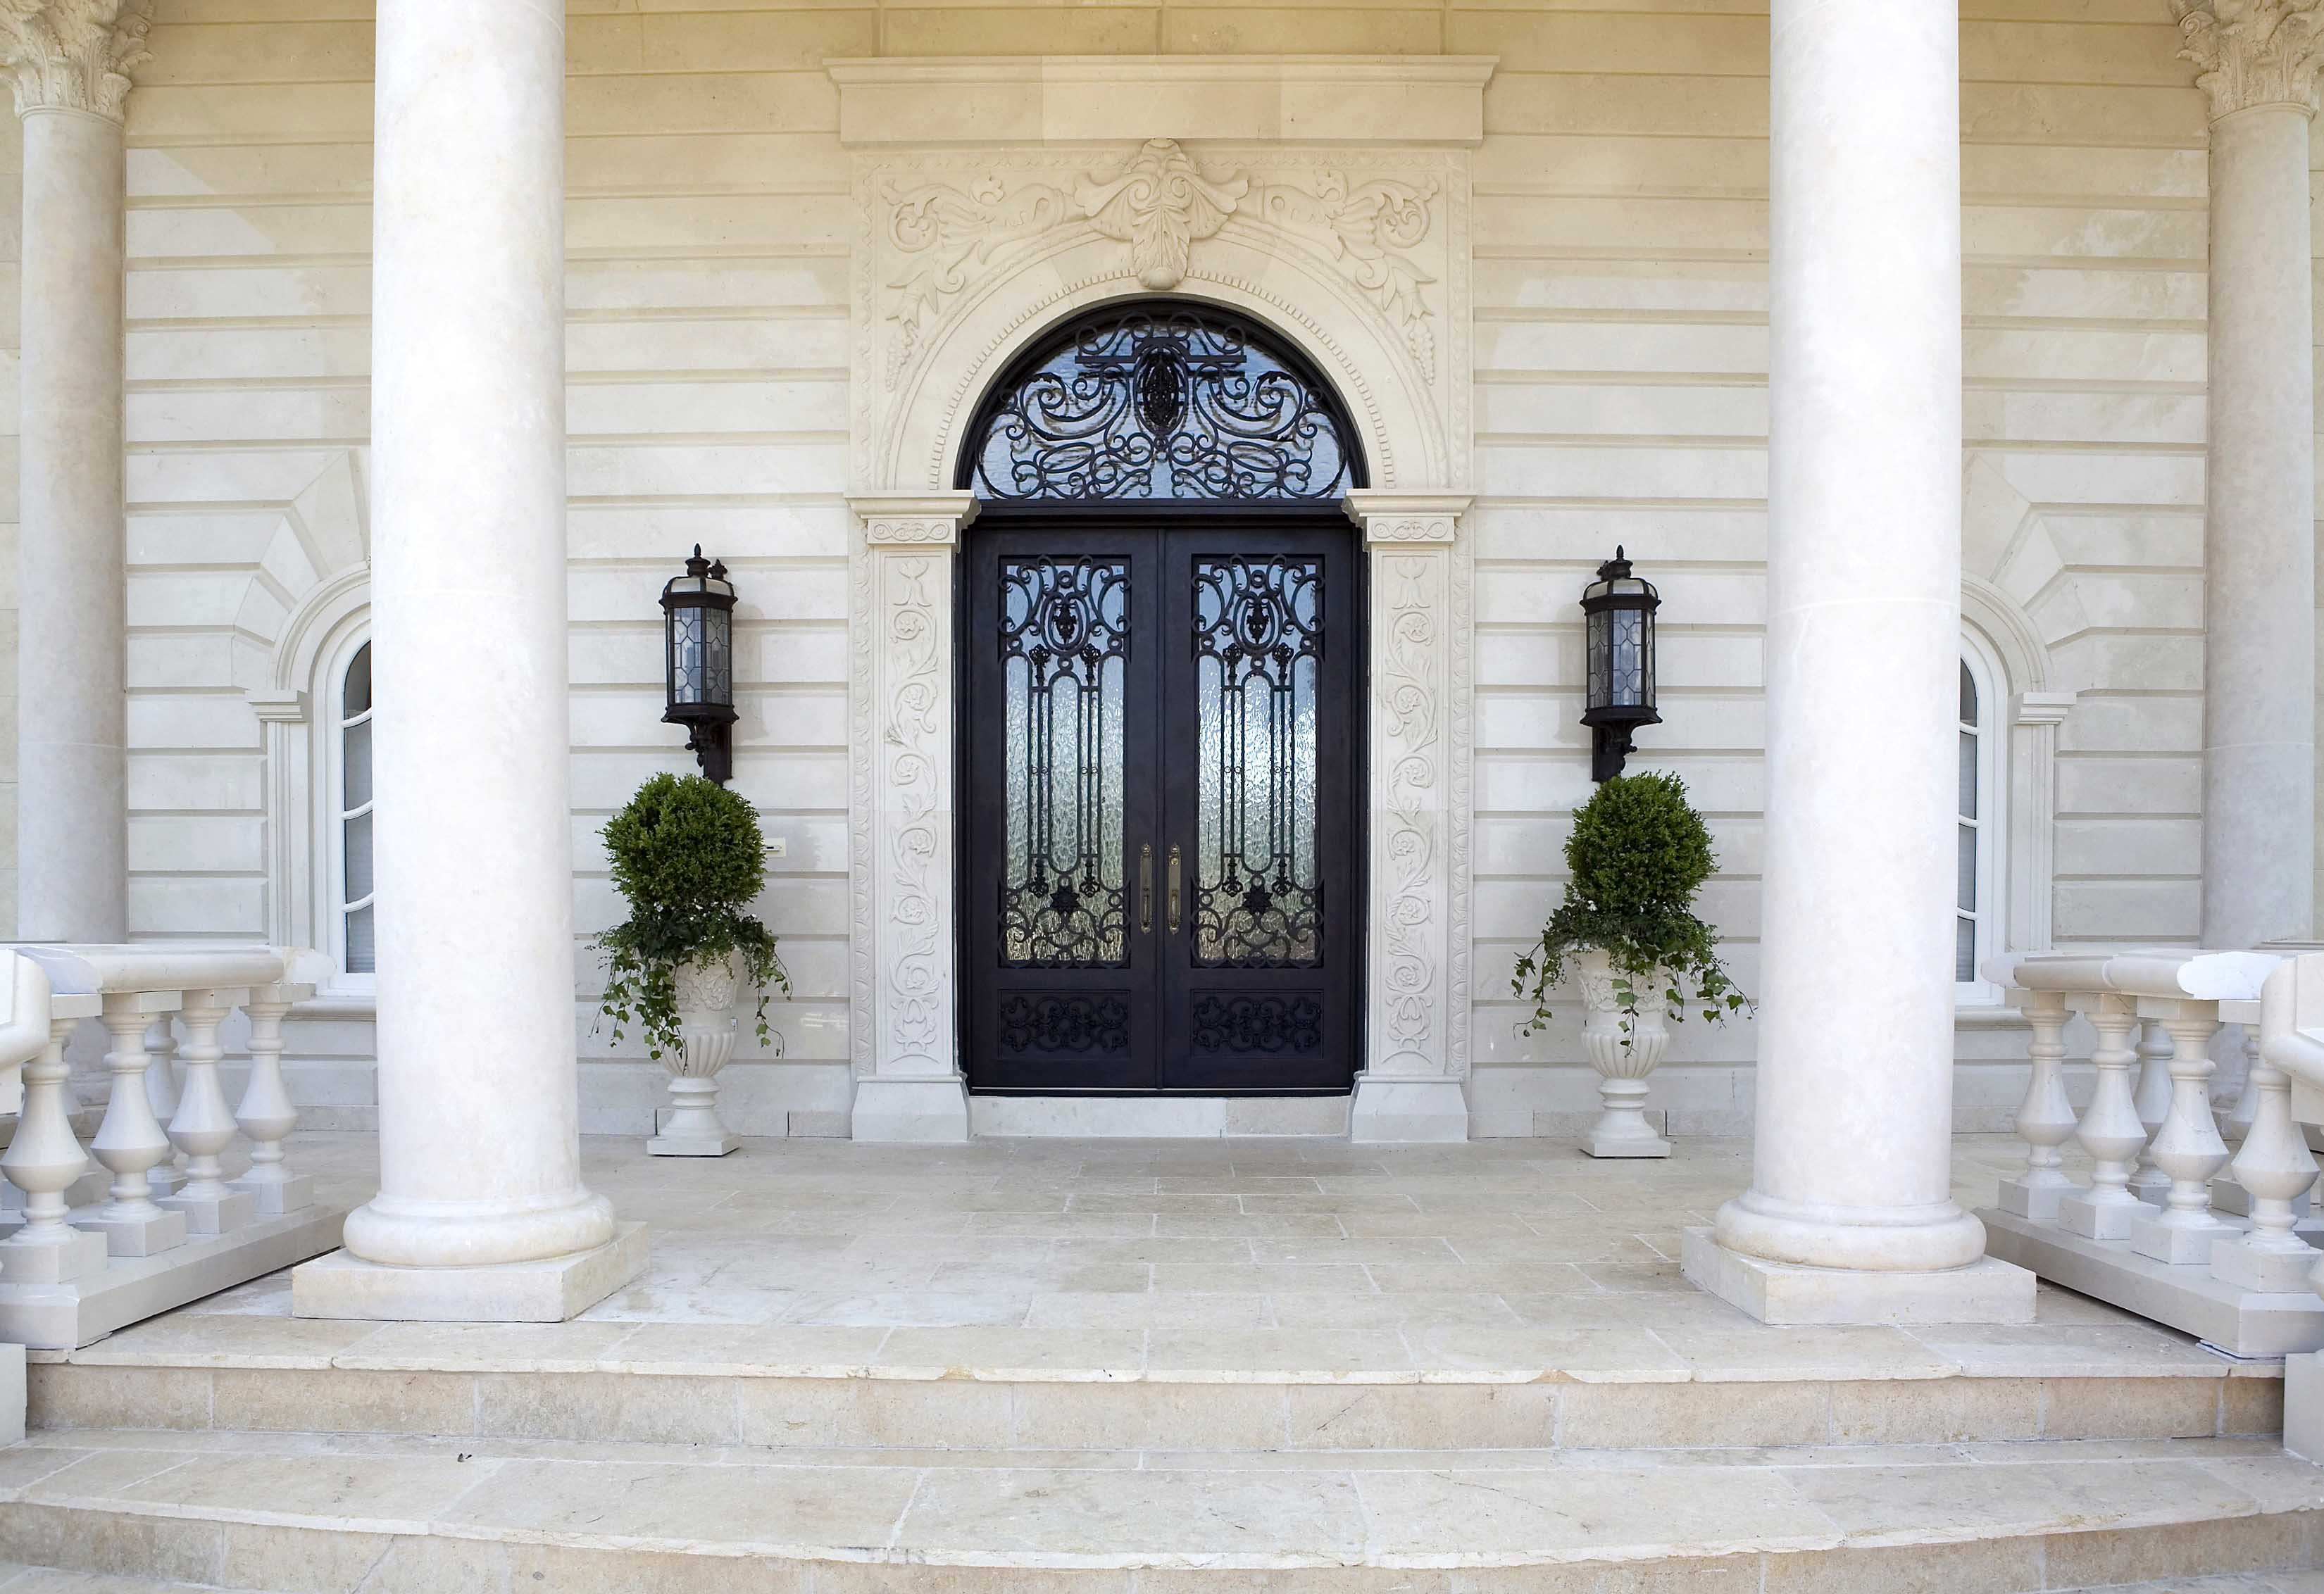 Entrance of mansion with double doors made of steel and glass with white columns